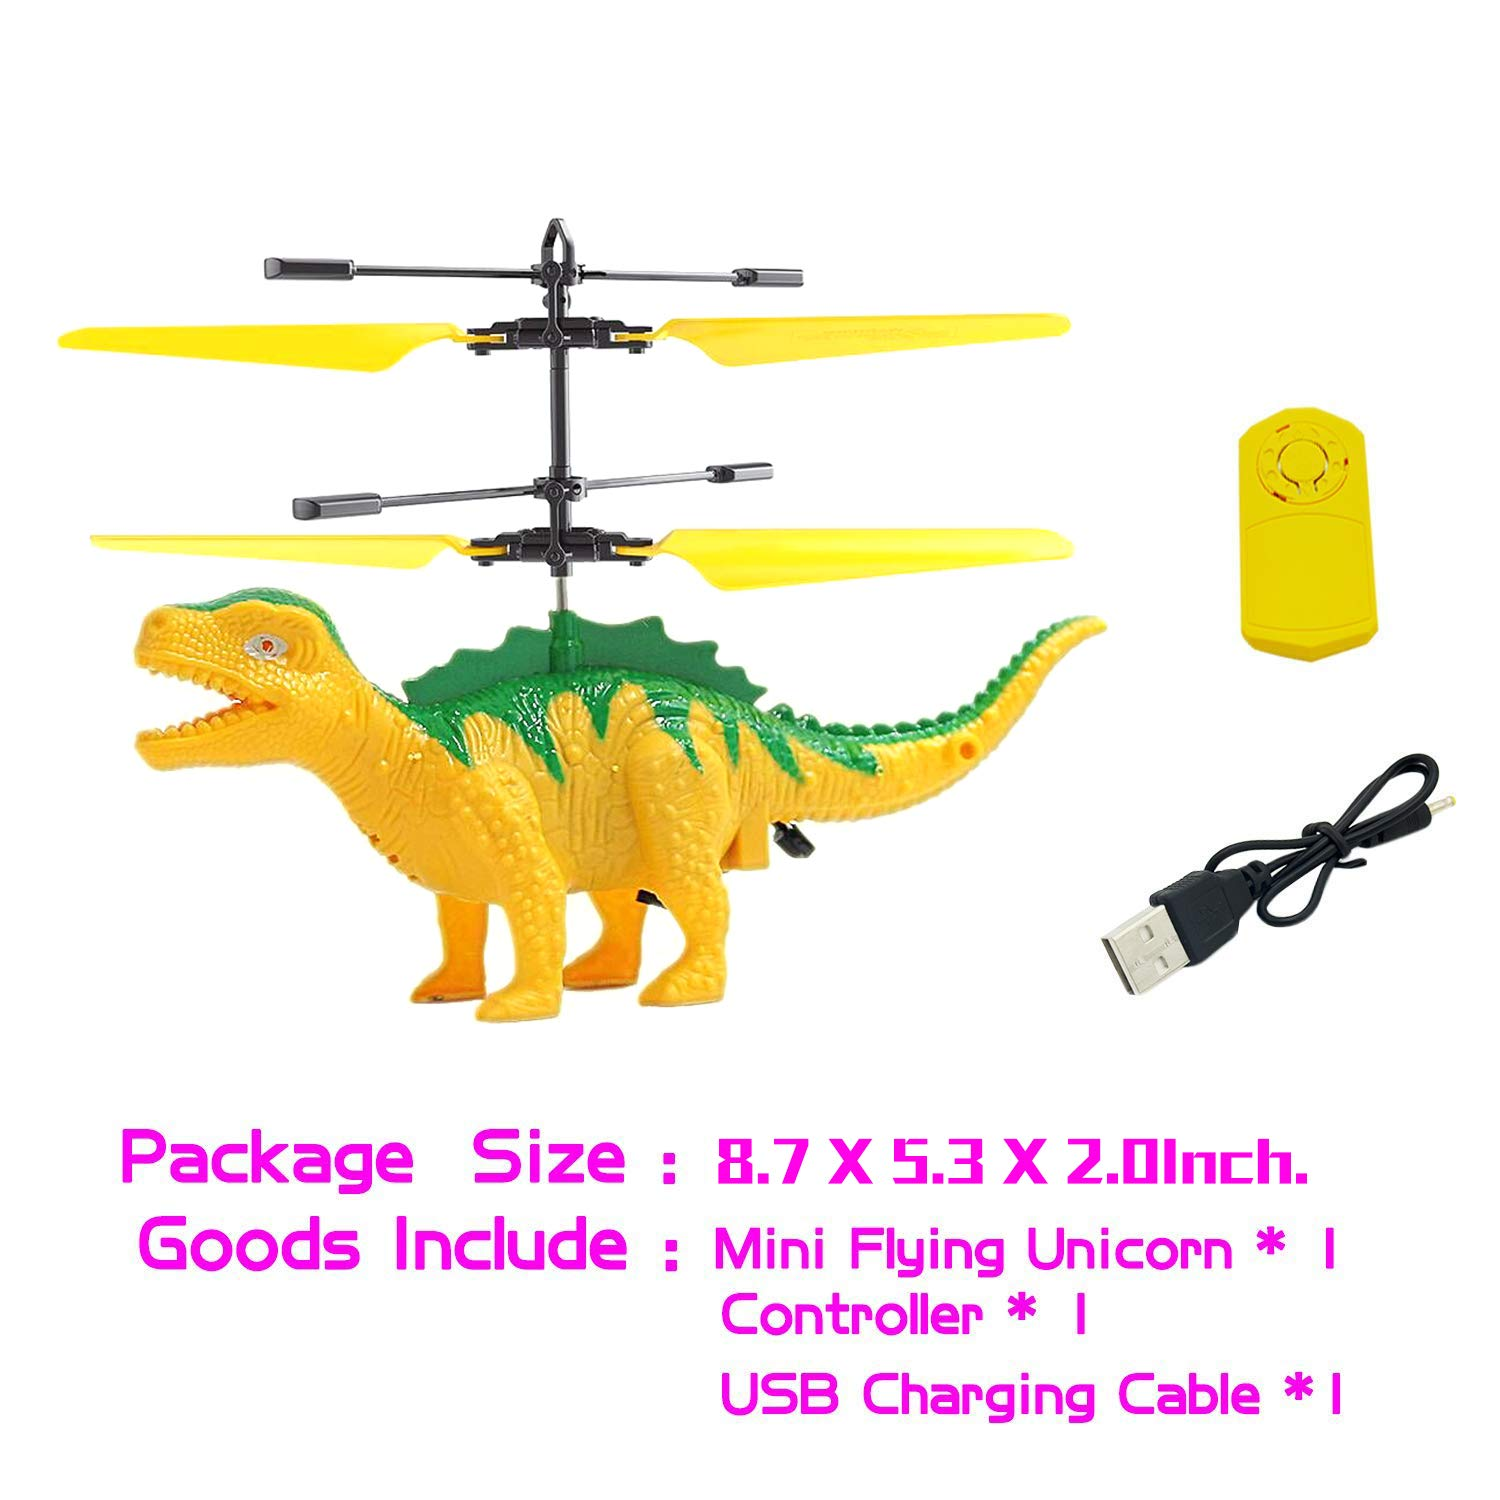 Anda RC Flying Helicopter Dinosaurs Dragon Toys for 6 Year Old Boys Girls Kids, Mini Remote and Hand Controlled Dinosaurs Helicopter for Birthday Holiday Xmas by Anda (Image #5)